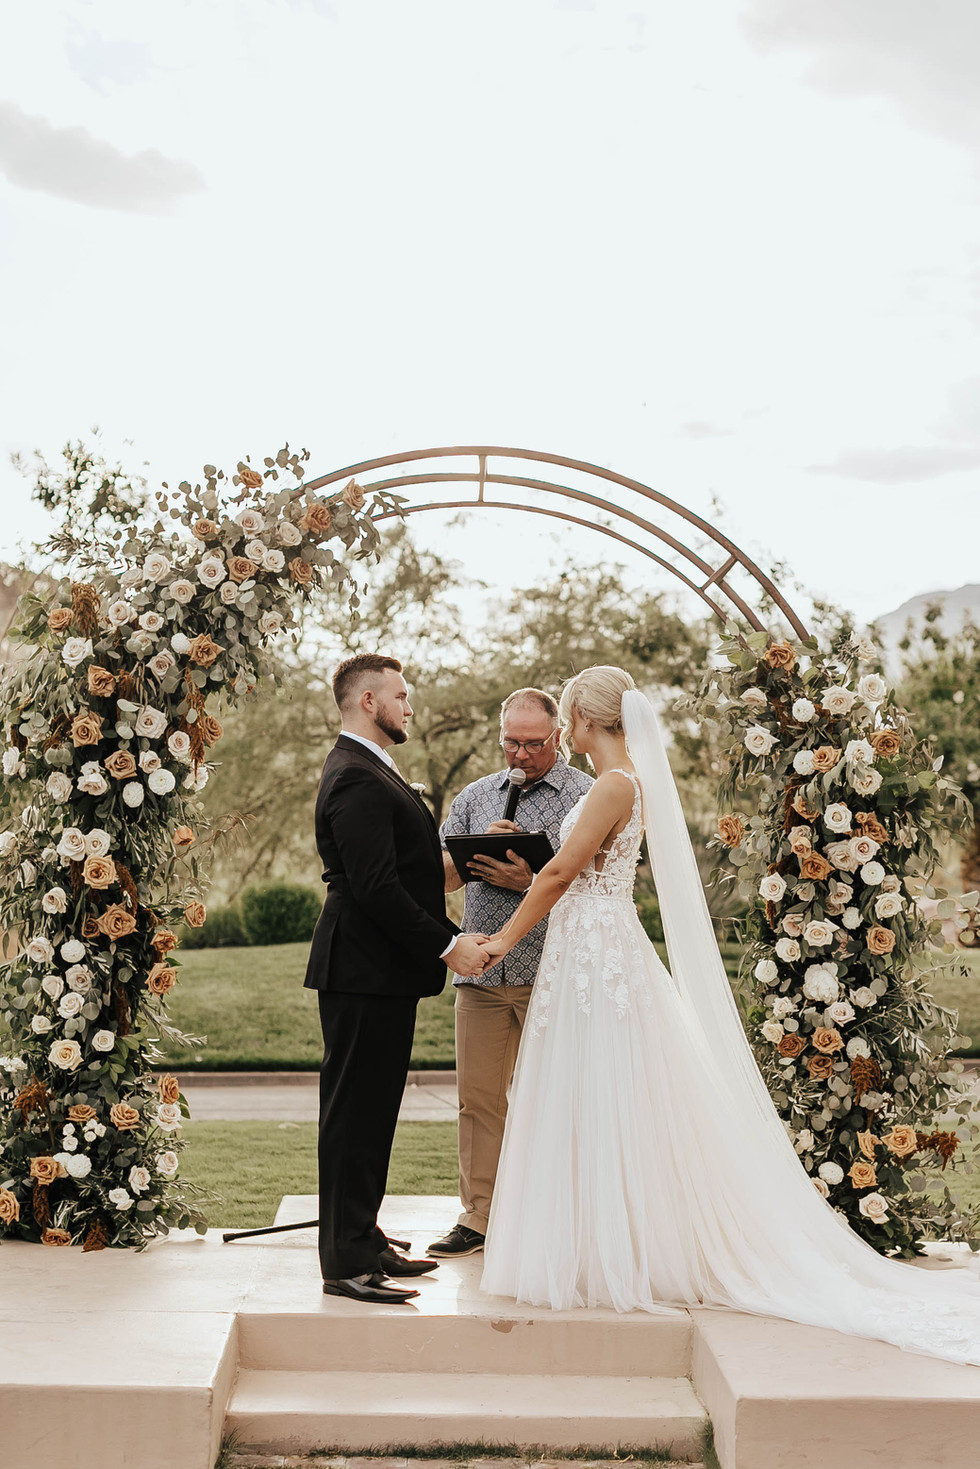 Toffee and dusty blush wedding arch. Photo: Chelsea Kissam